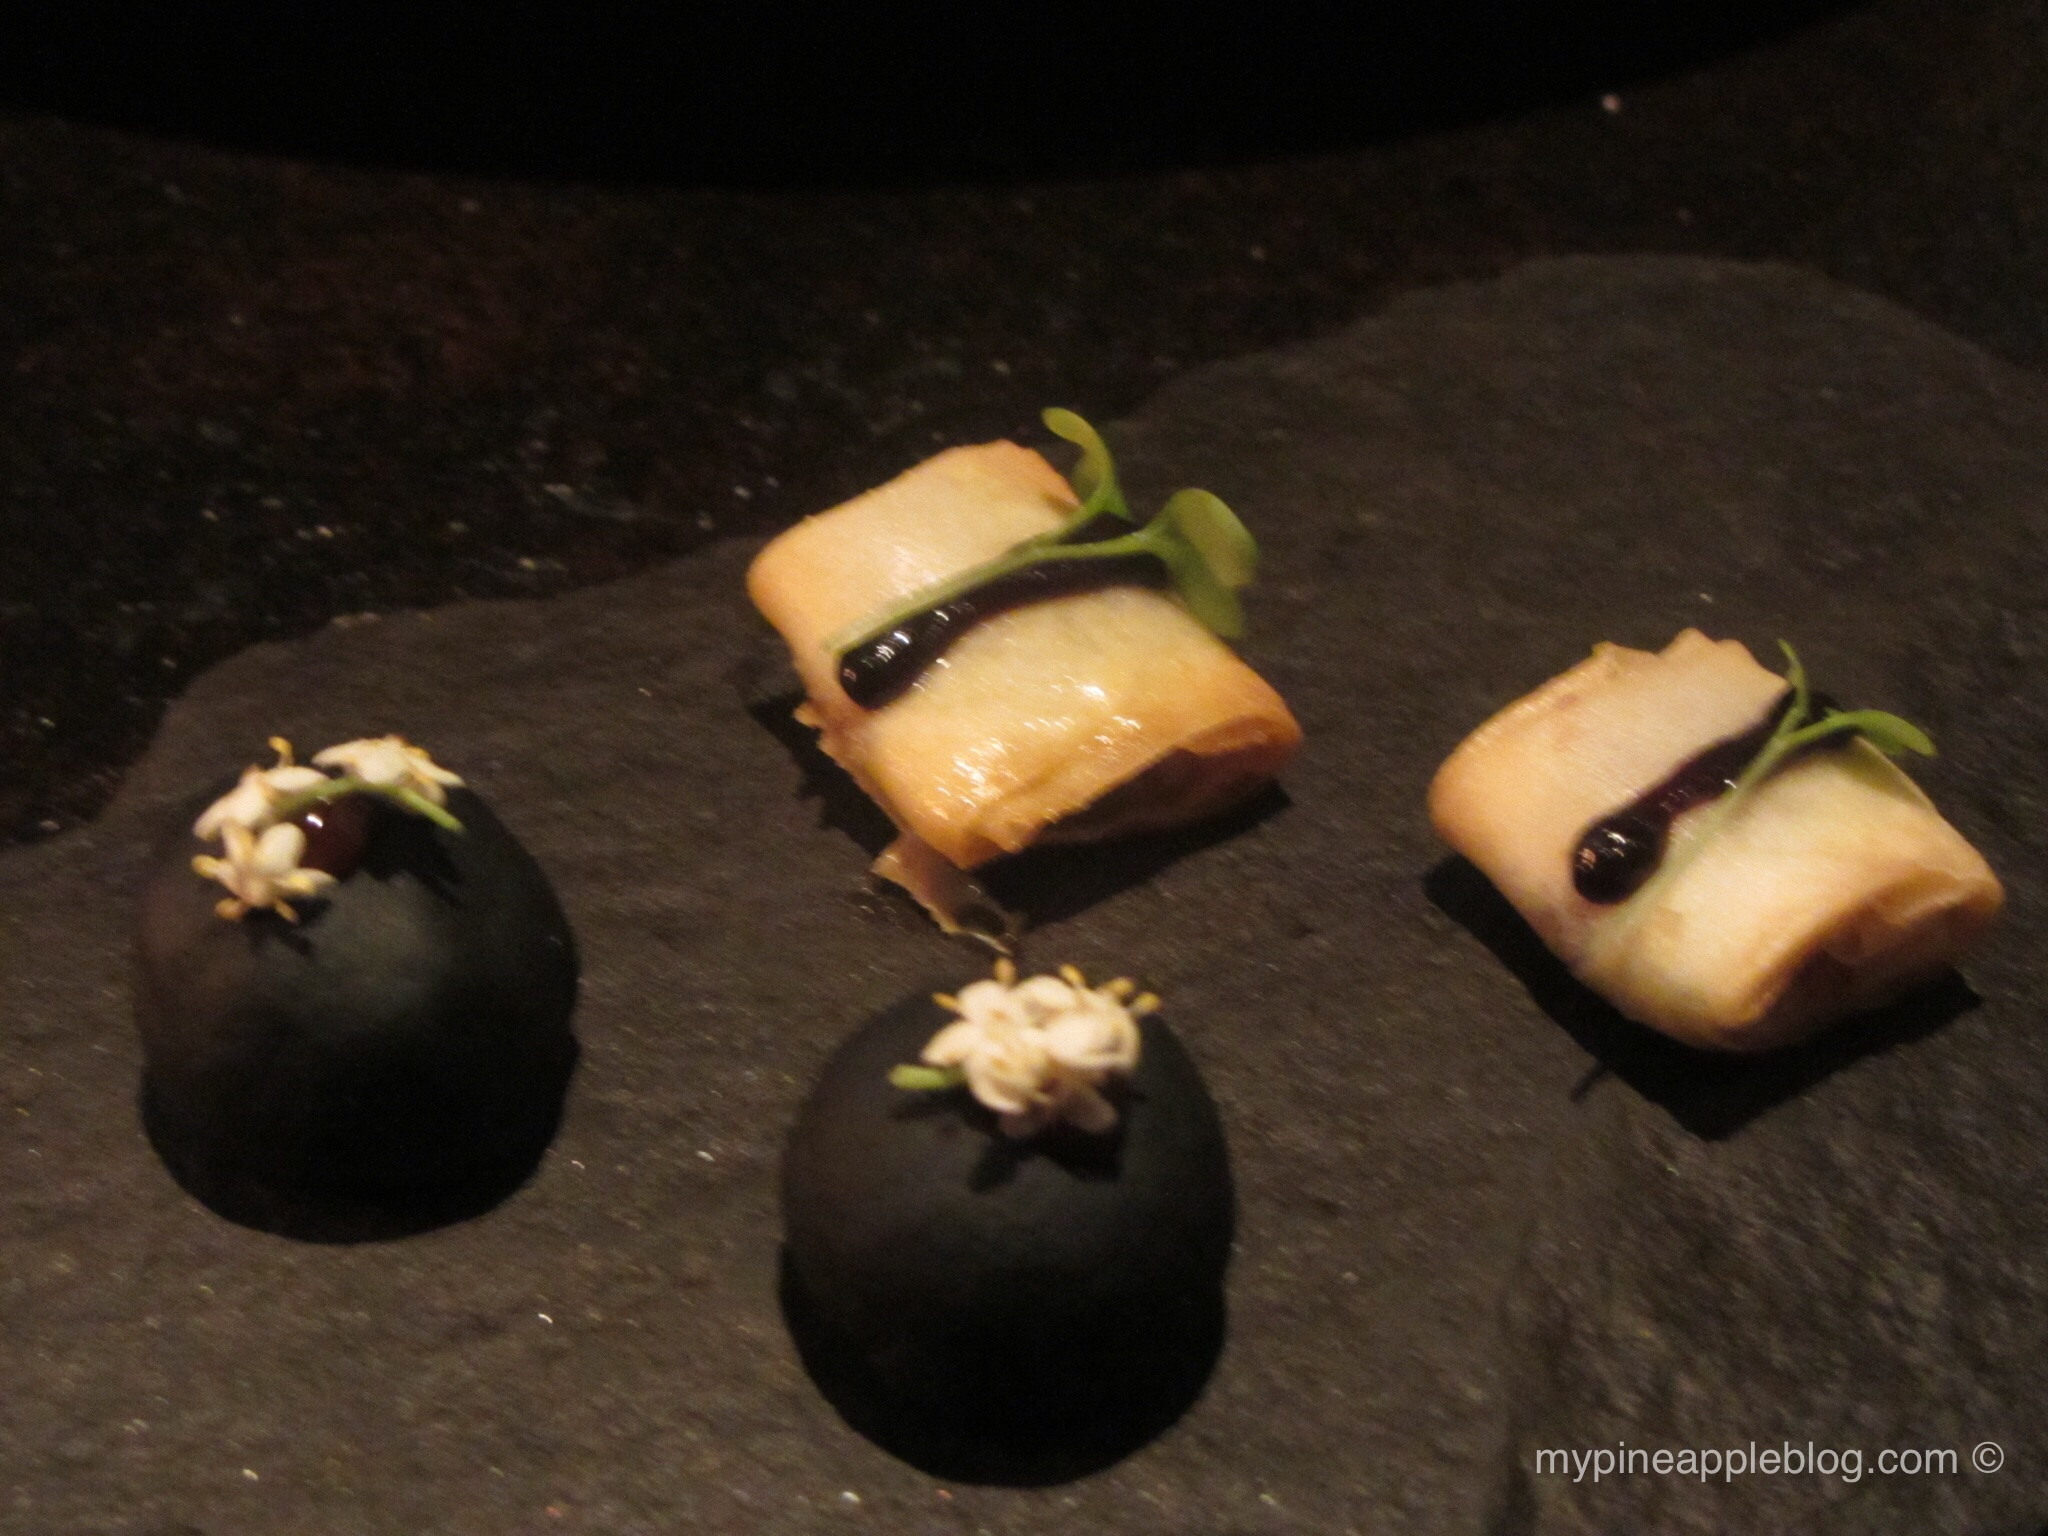 Delectable petit fours at Teatro